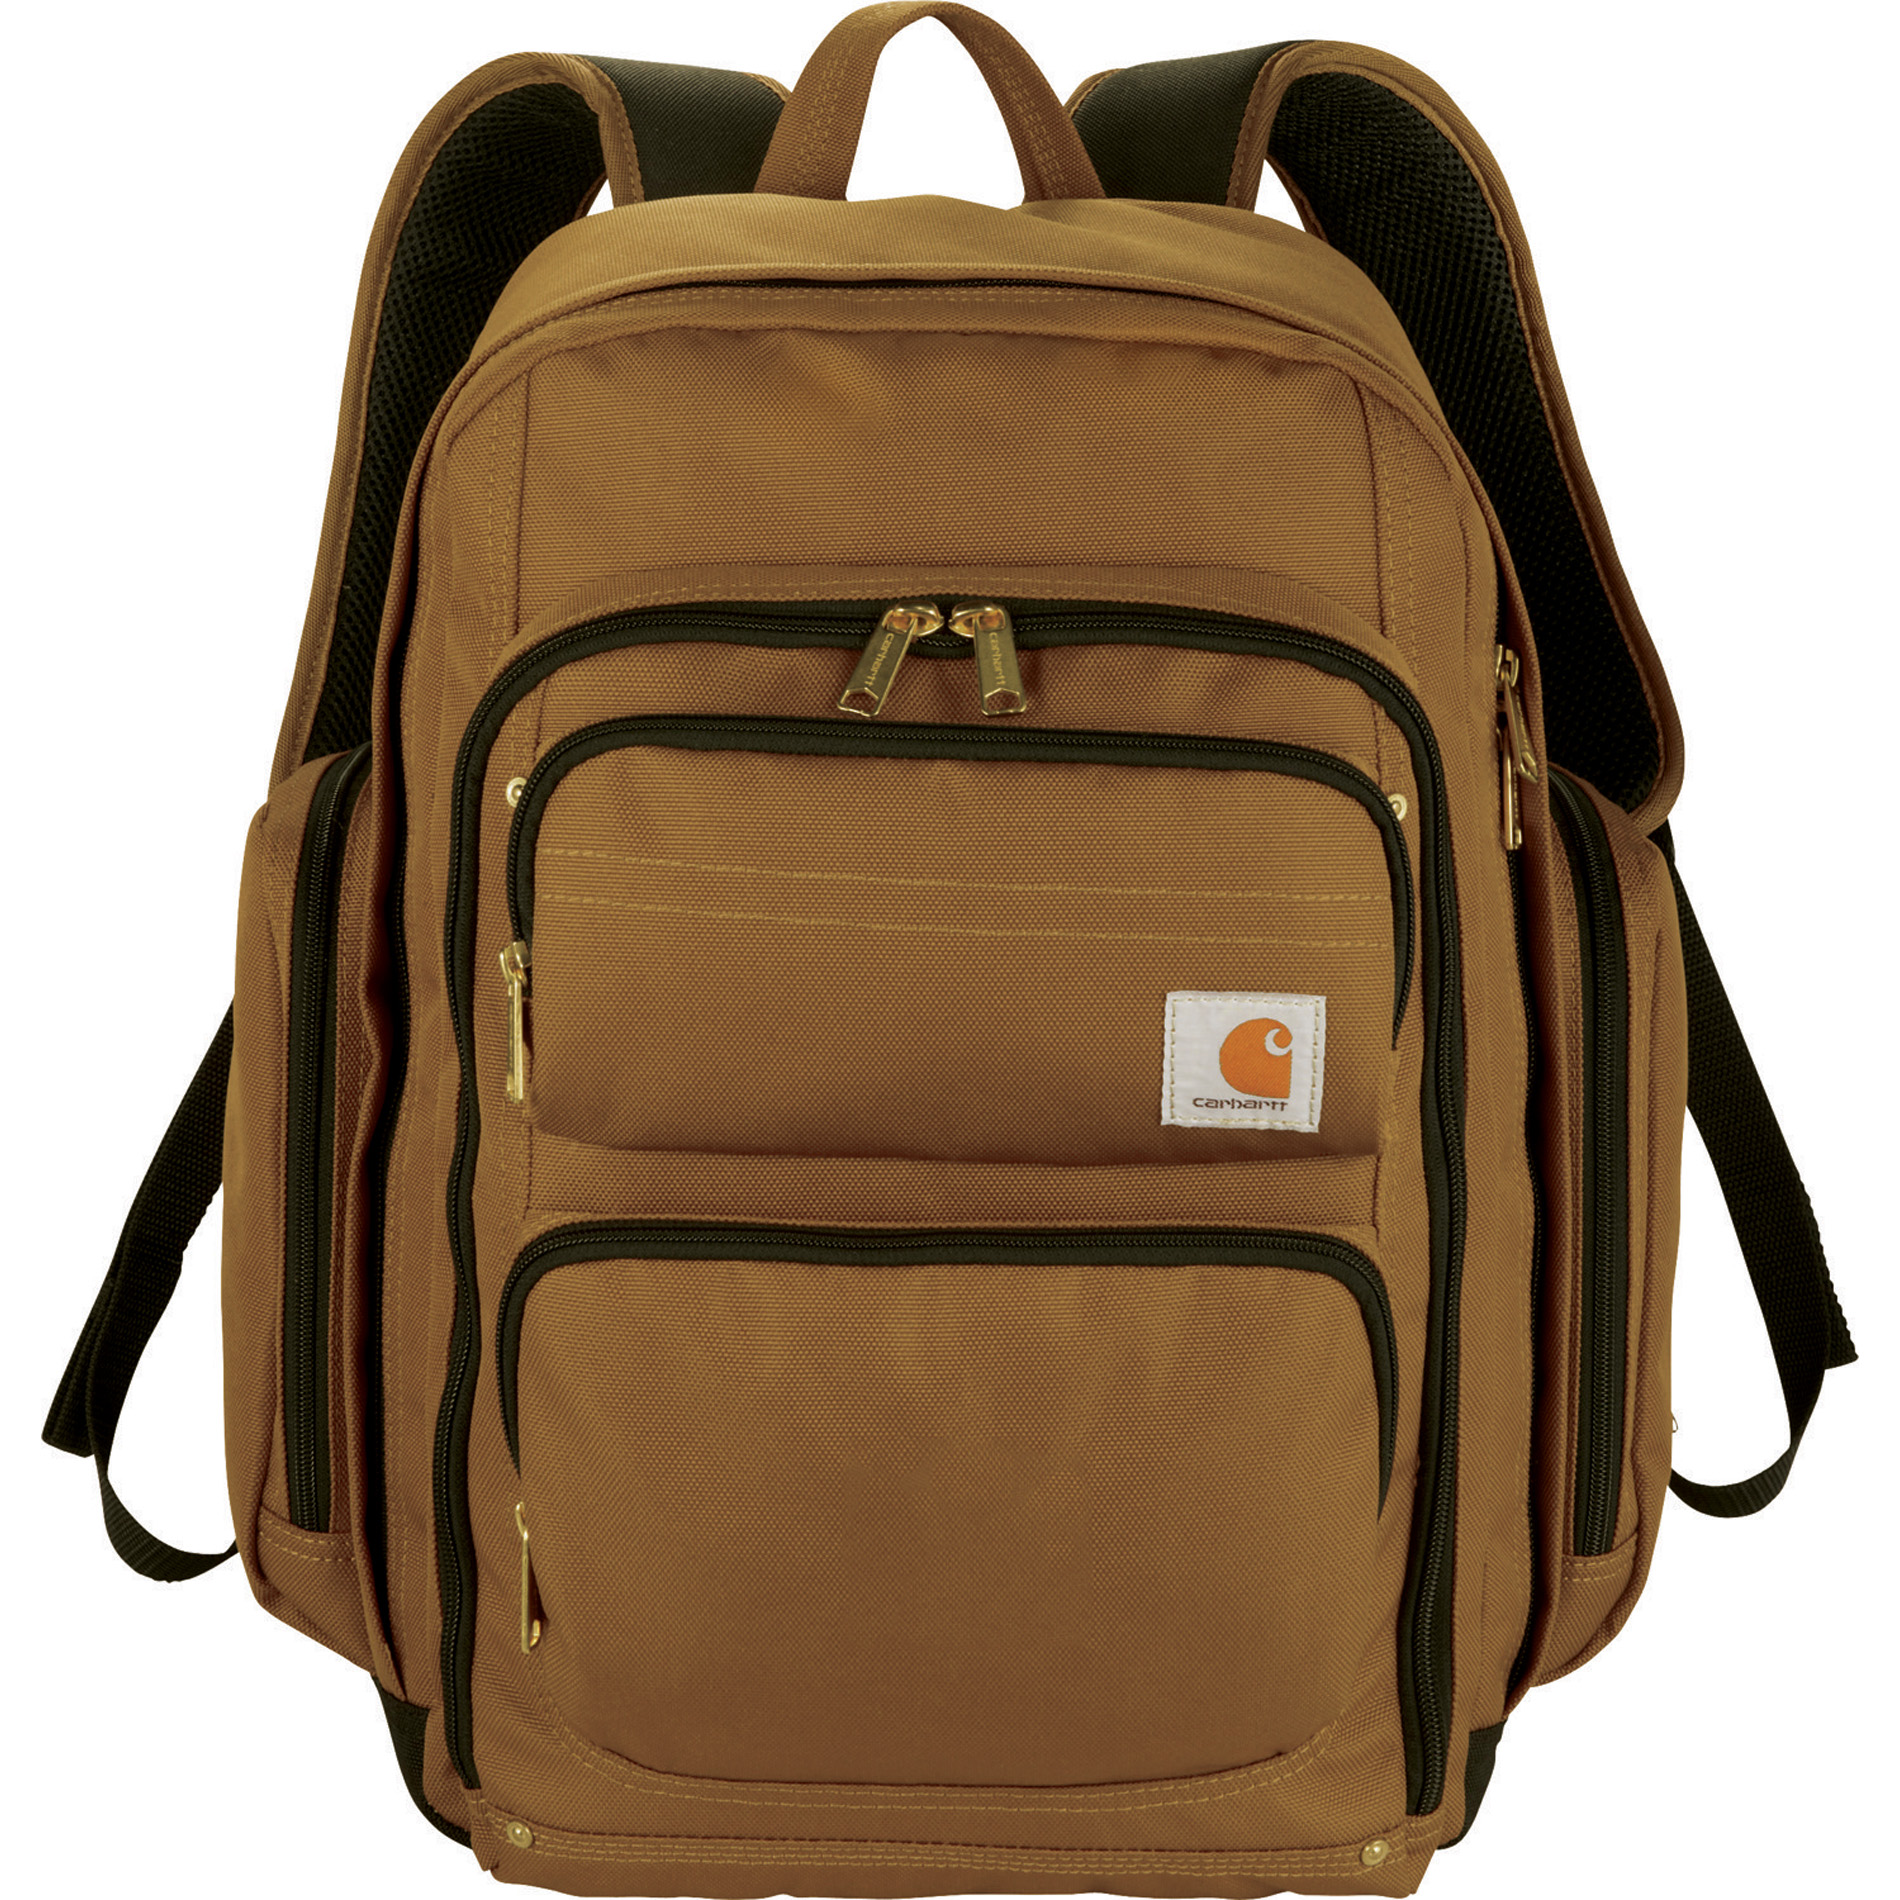 Carhartt 1889-41 - Signature Deluxe 17 Computer Backpack